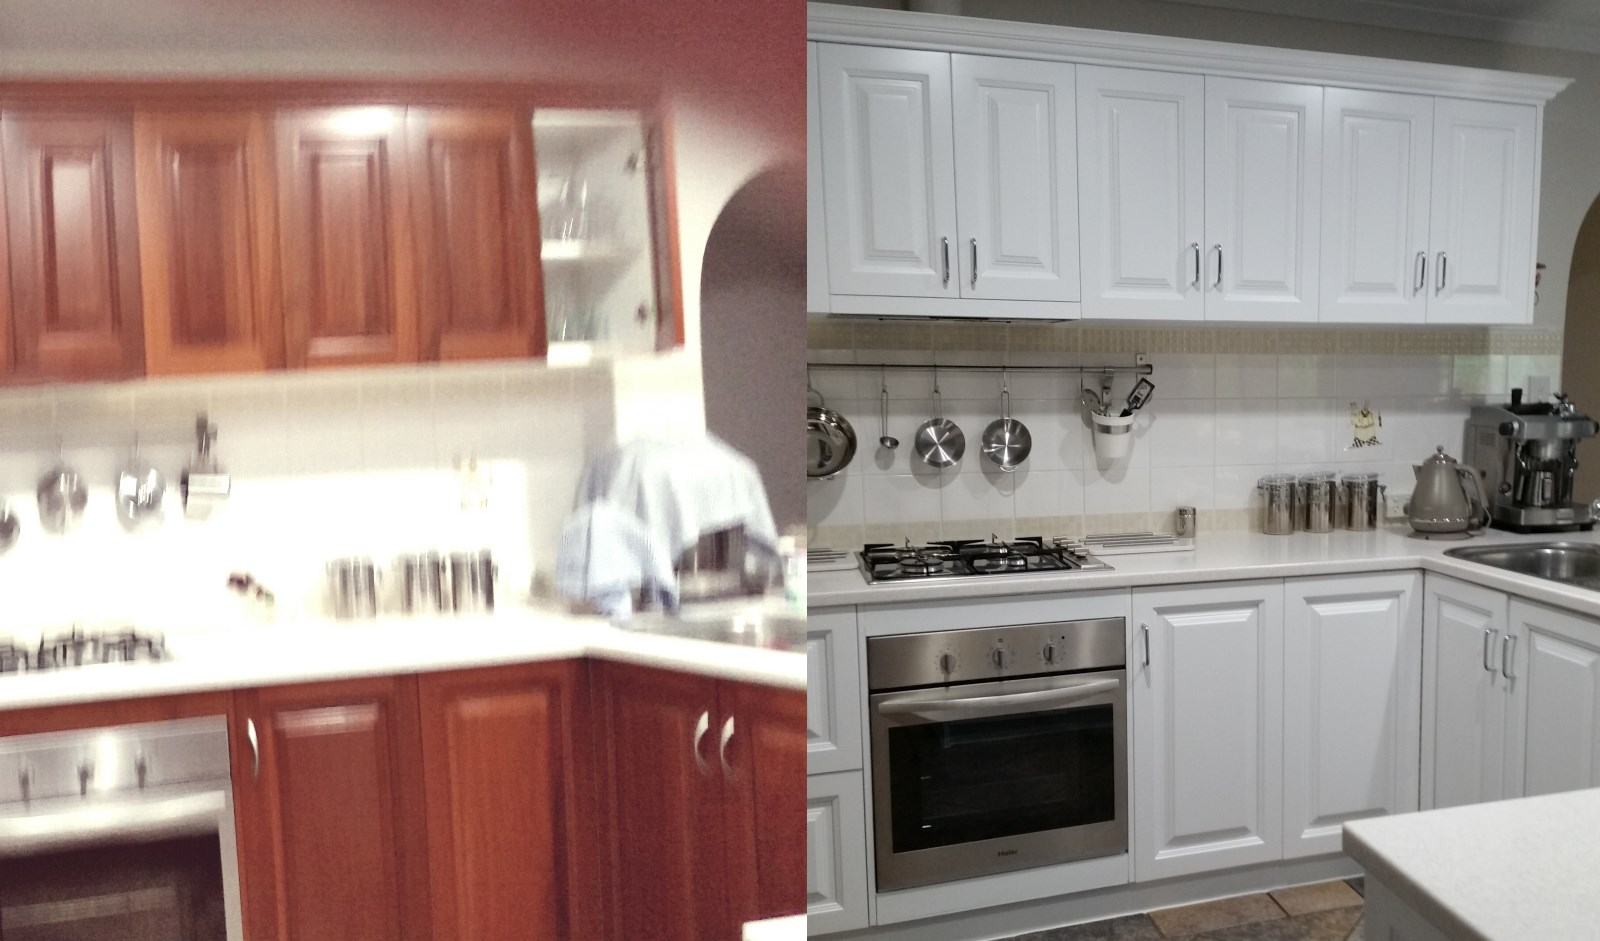 Resurfacing Kitchen Cabinets Adelaide | Digitalstudiosweb.com